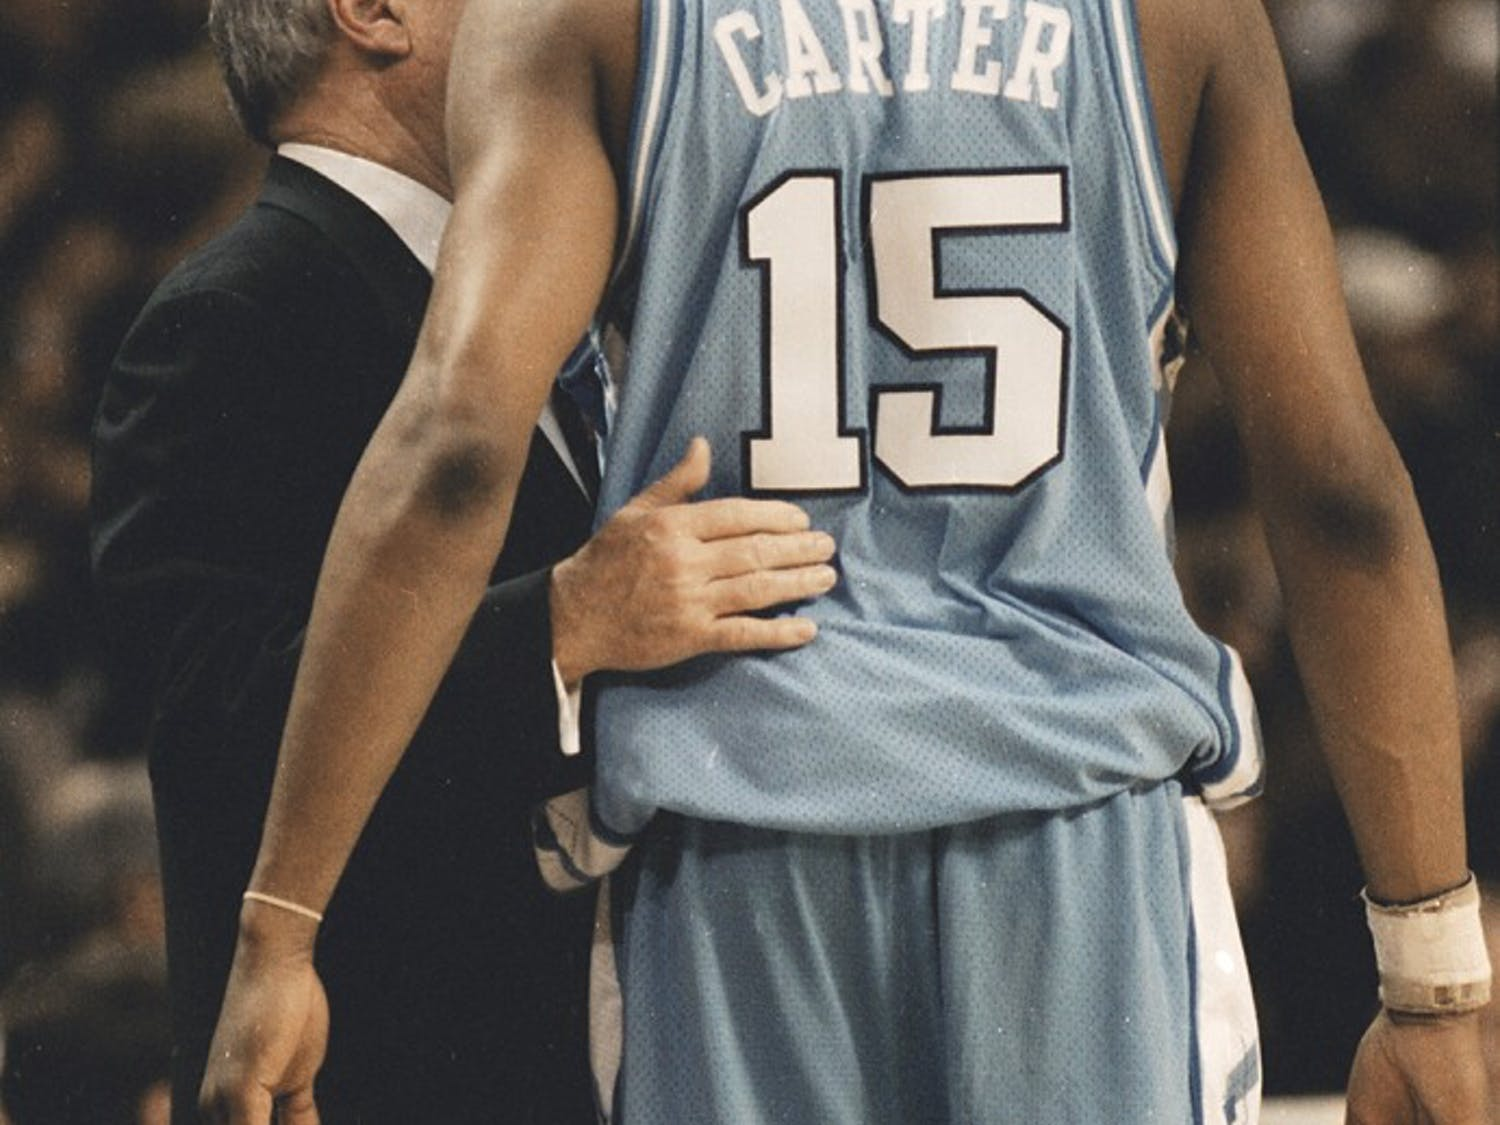 Dean Smith talks to Vince Carter during the Feb. 27, 1996 game against Wake Forest. The Demon Deacons won 84-60. DTH File/Erik Perel.